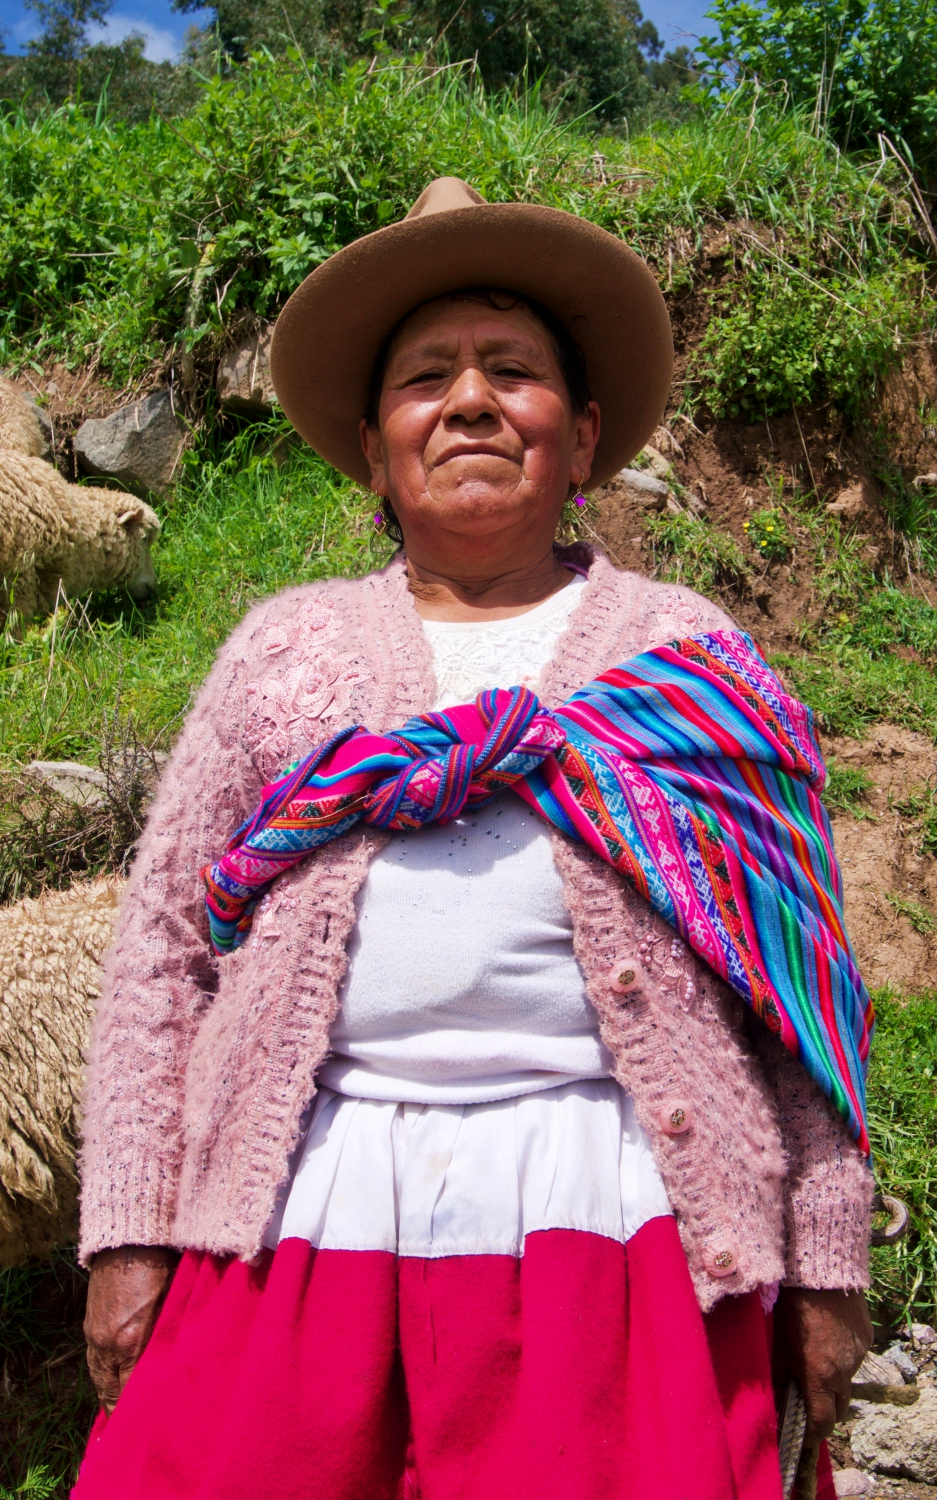 We met Josefina and her sheep as we walked up the steep trail leading up to Laguna Willcacocha. She's typically dressed like most of the women in the countryside.